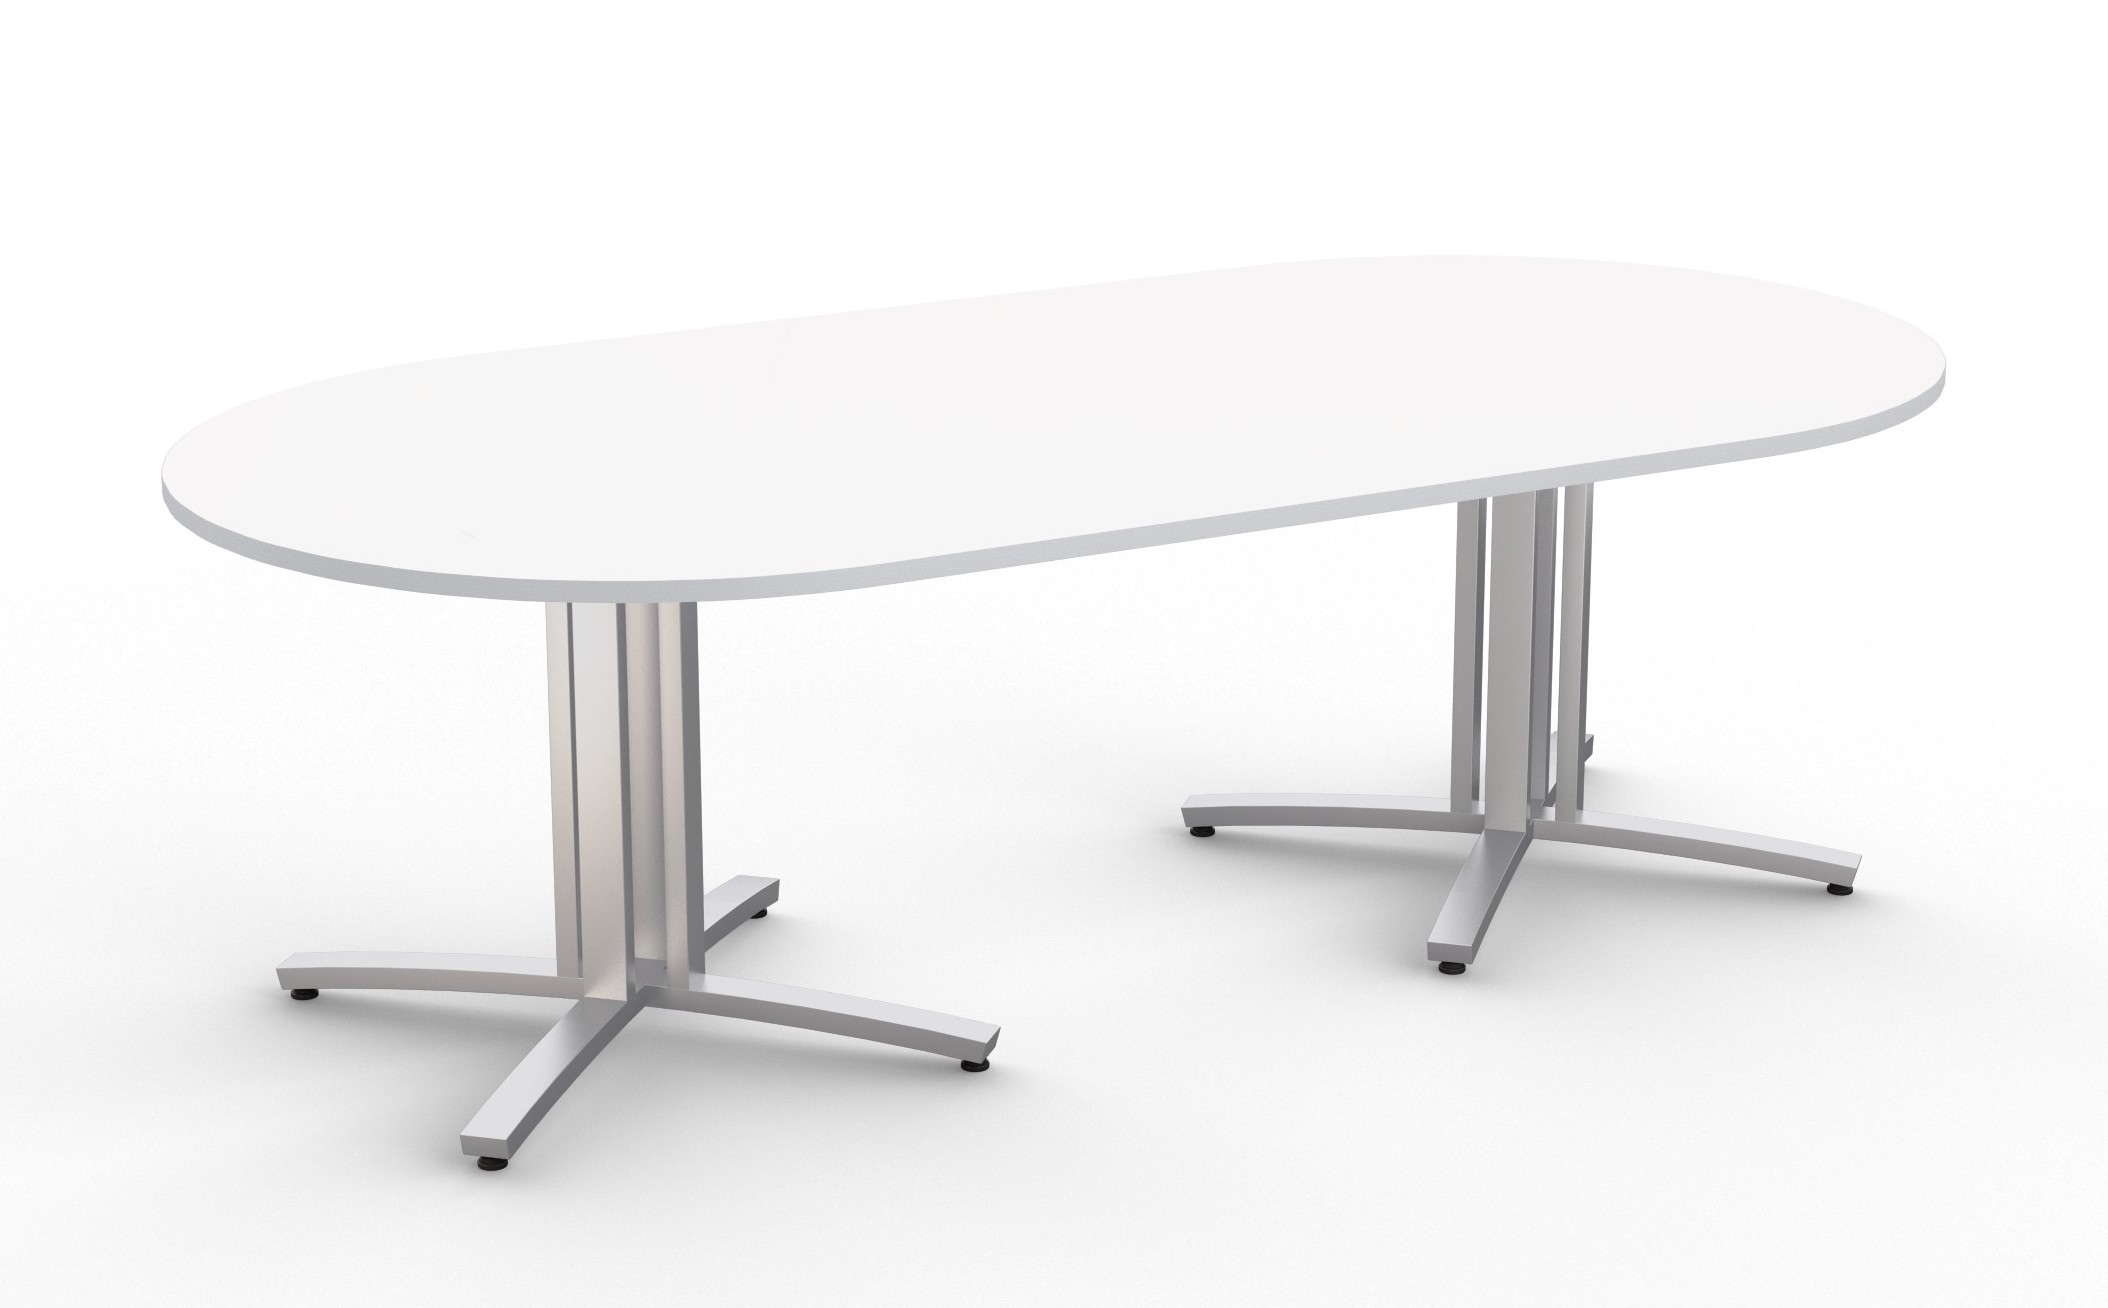 structure 4x racetrack table